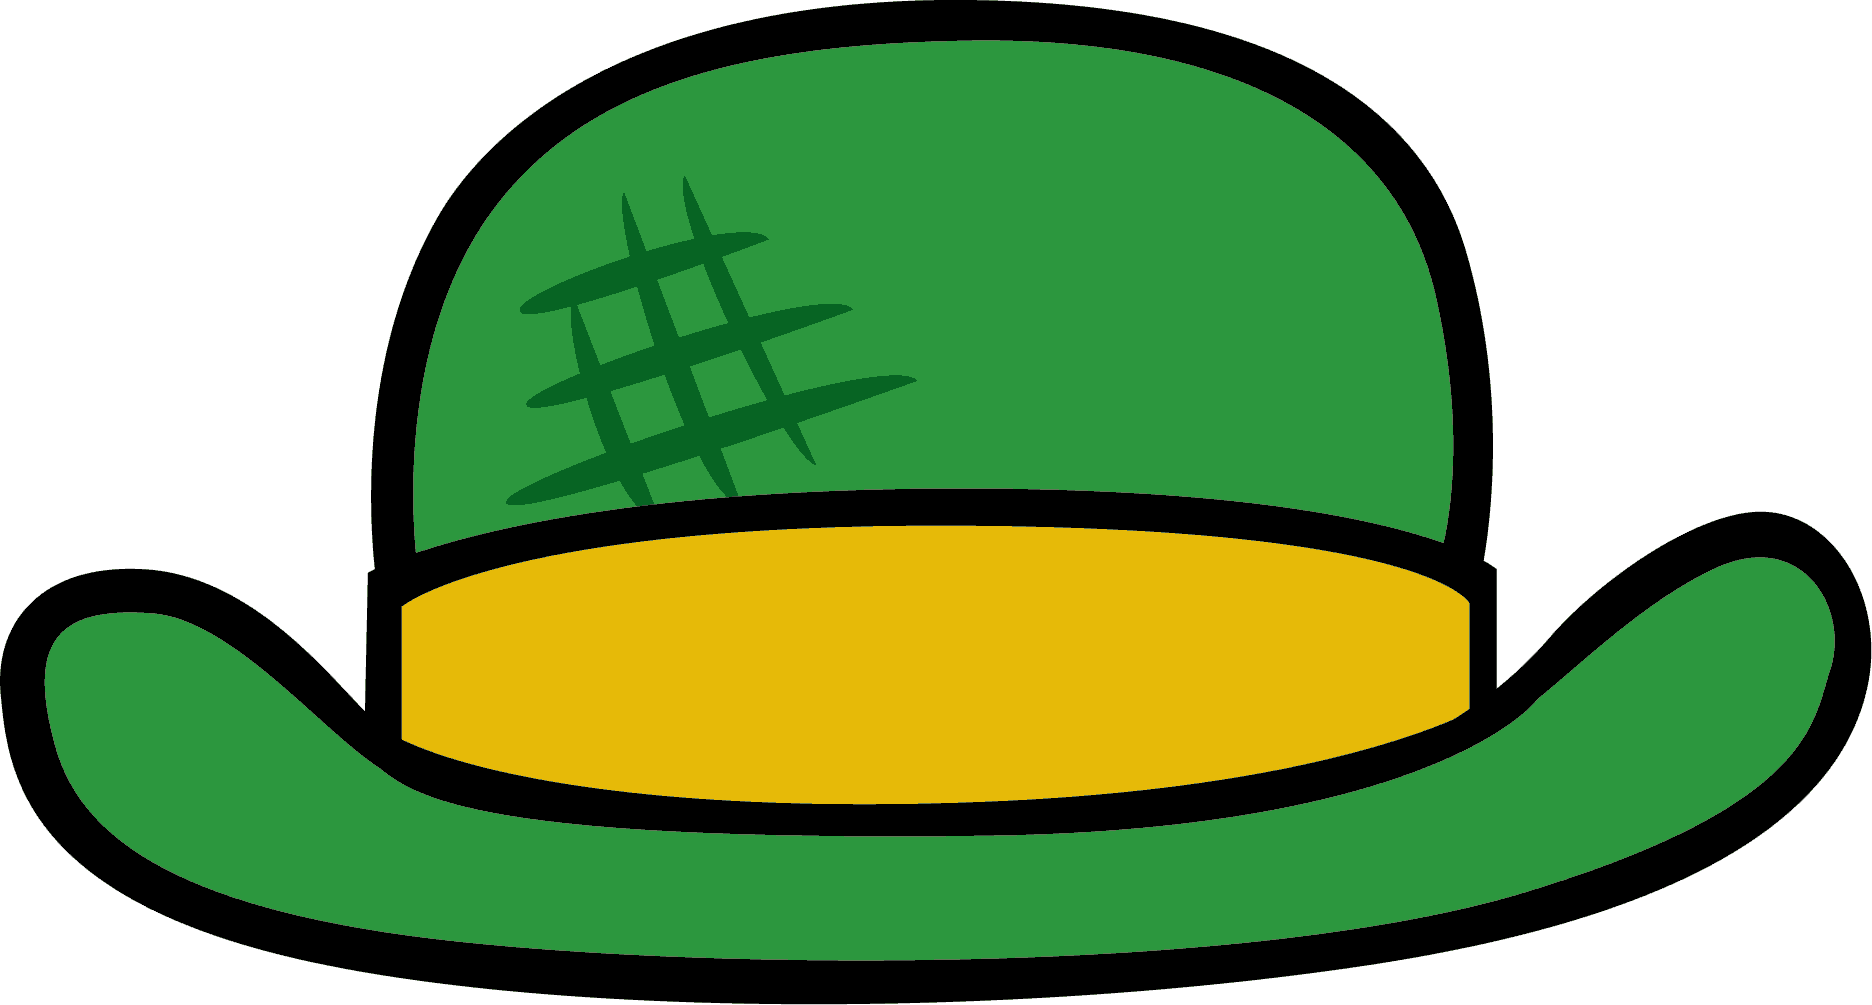 Hat clipart #10, Download drawings